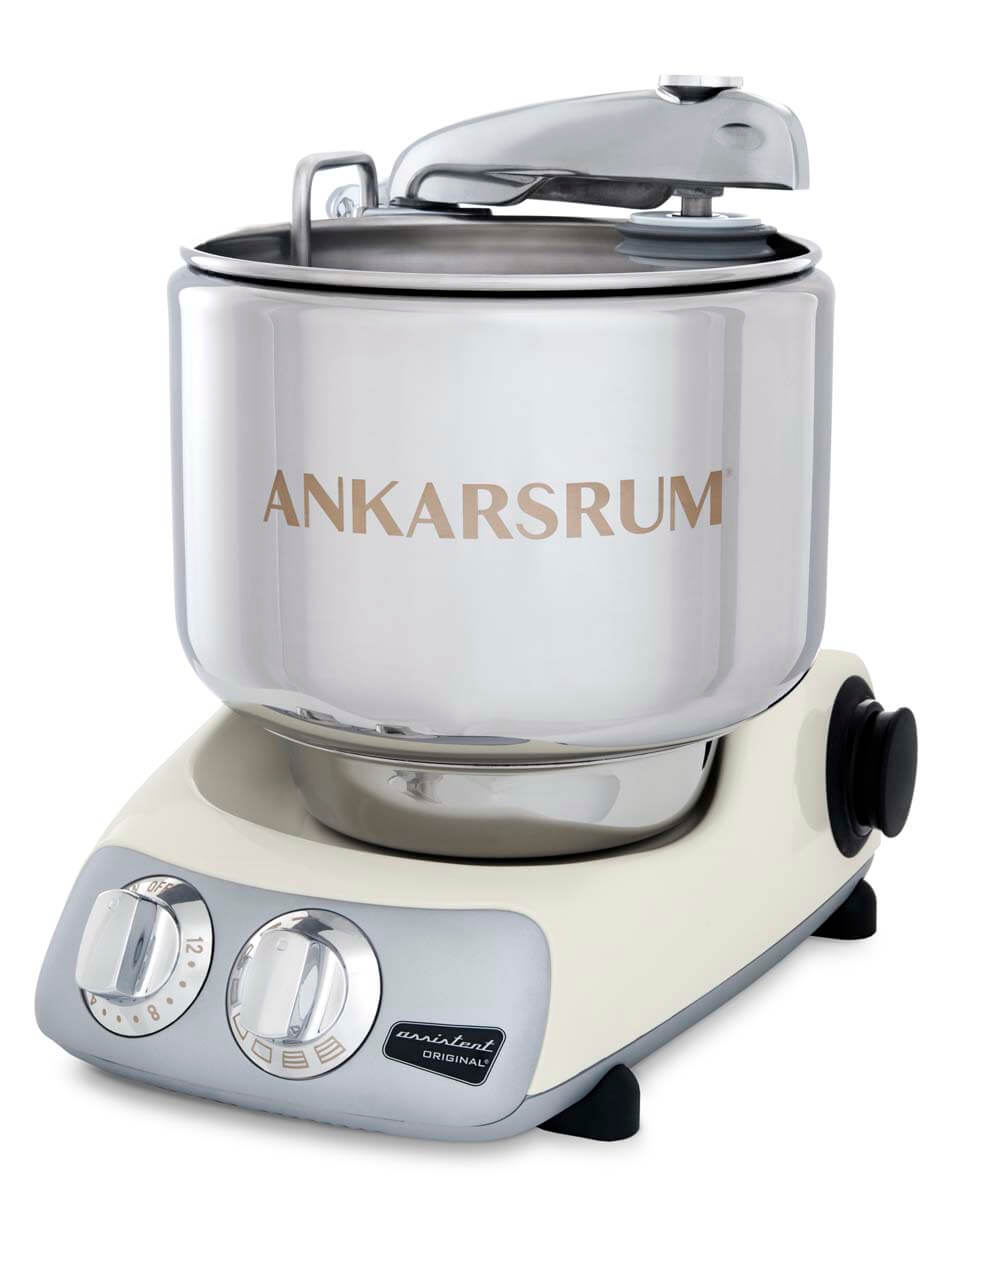 Ankarsrum Assistent Basis Creme light